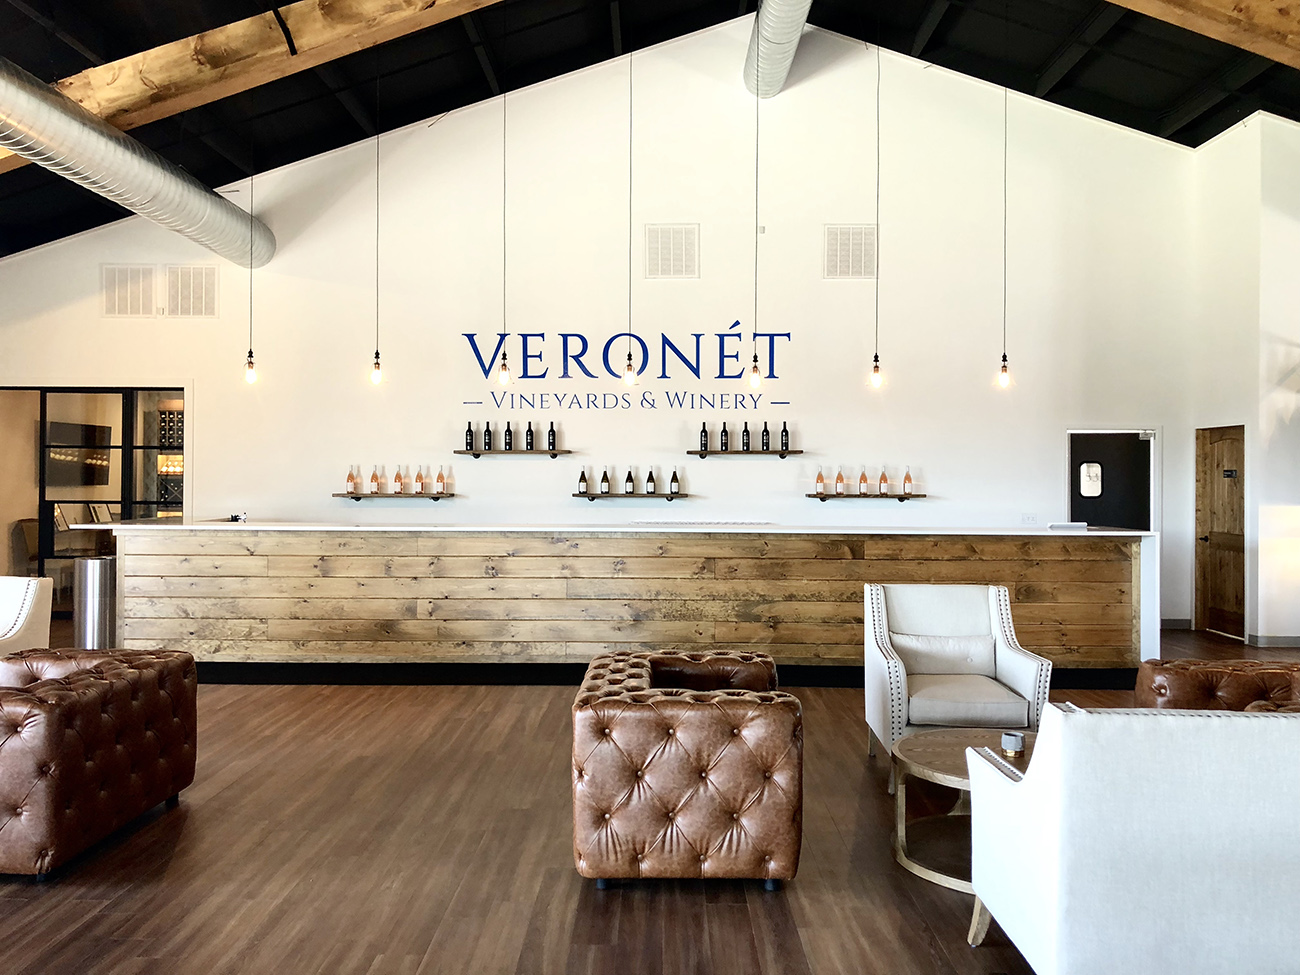 View photos: New 70-acre vineyard with 2 bars and 70-foot outdoor patio opening September 27 just 30 miles from Charlotte